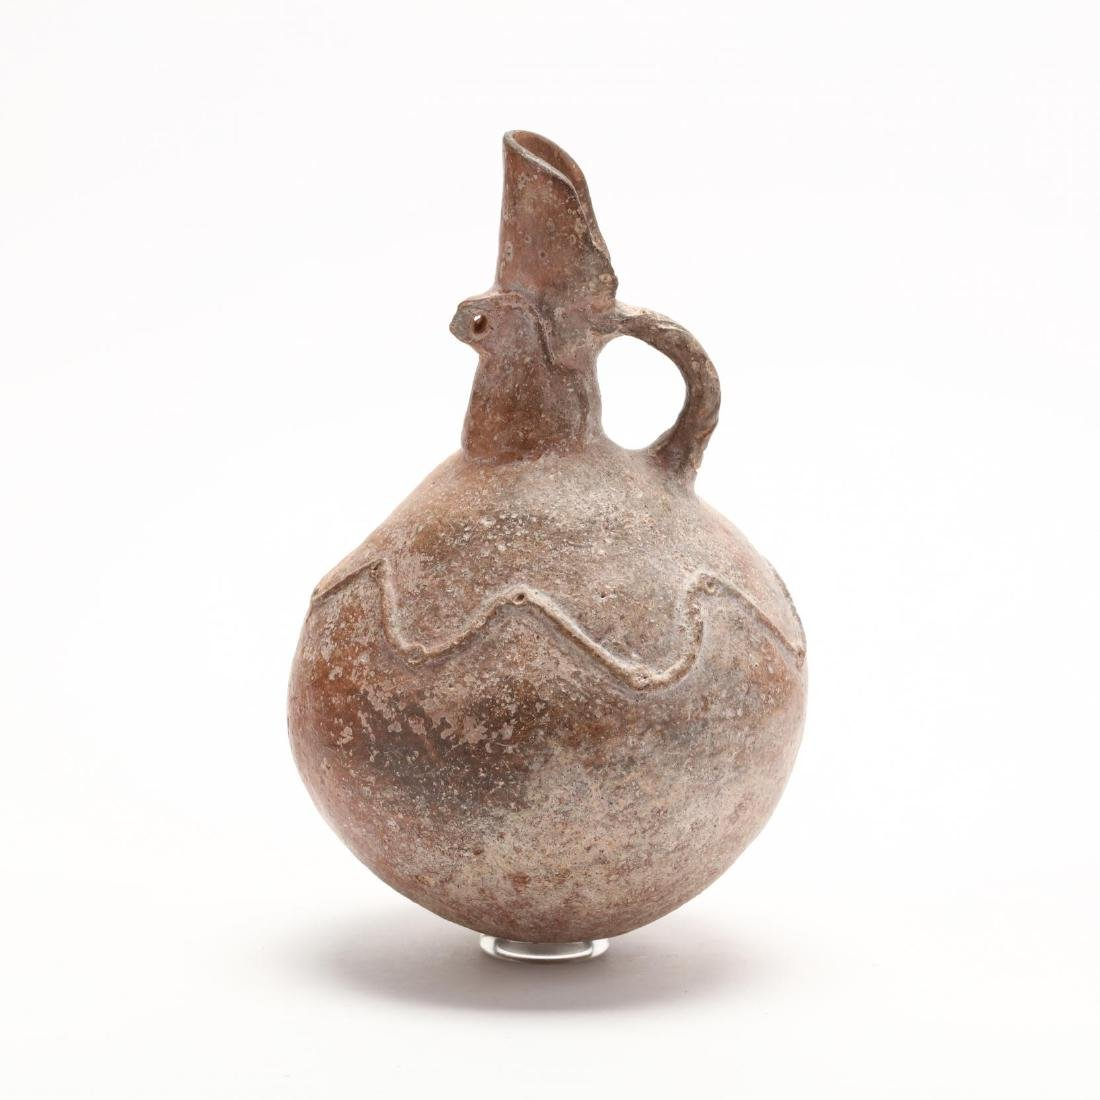 Cypriot Middle Bronze Age Polished Red Ware Jug - 3